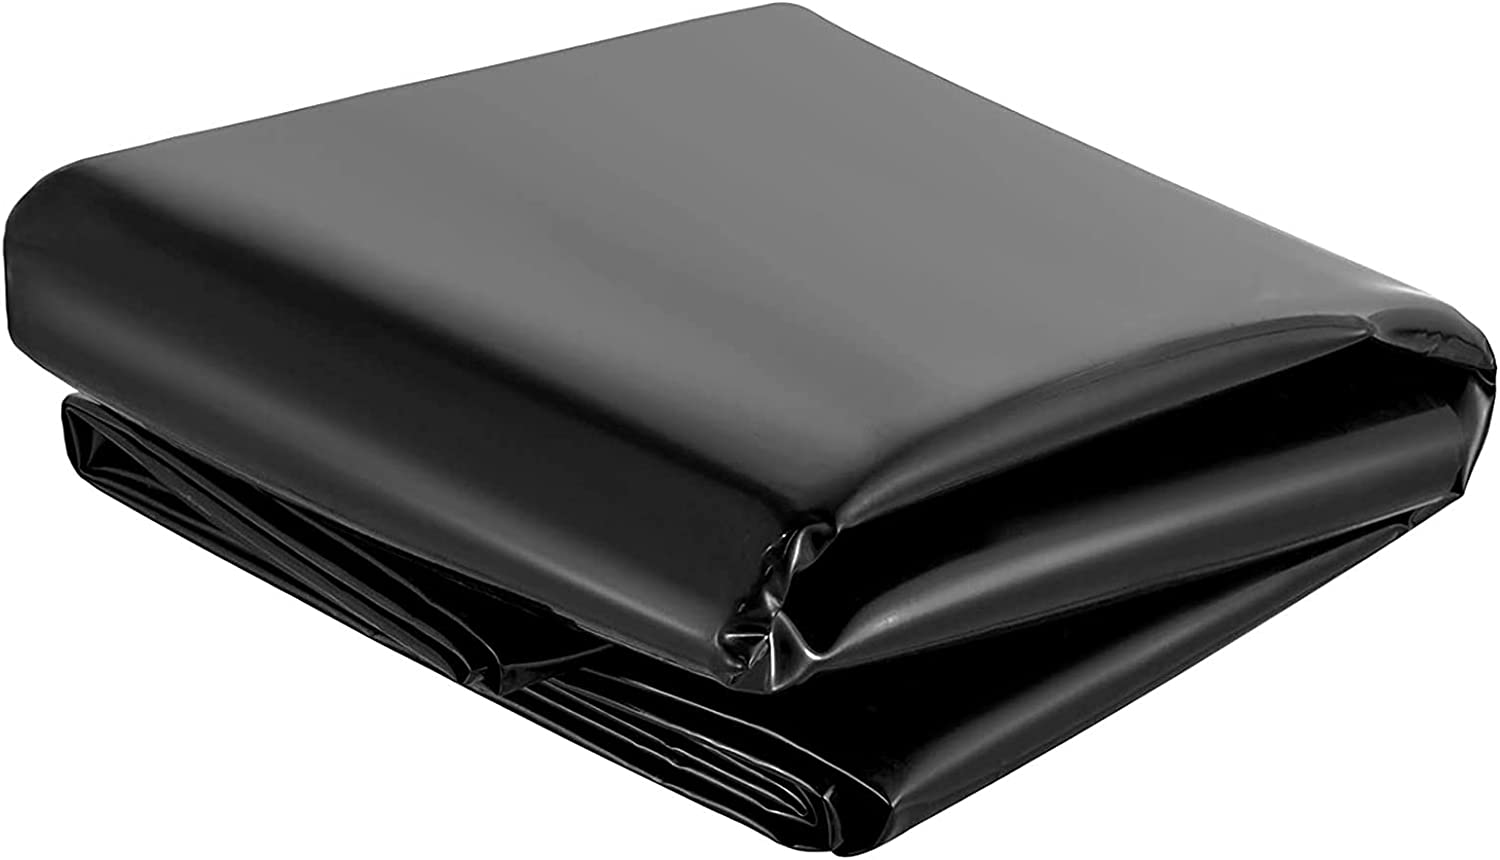 Heavy-duty pond OFFicial shop liner Impermeable membrane 0. lining In a popularity protection